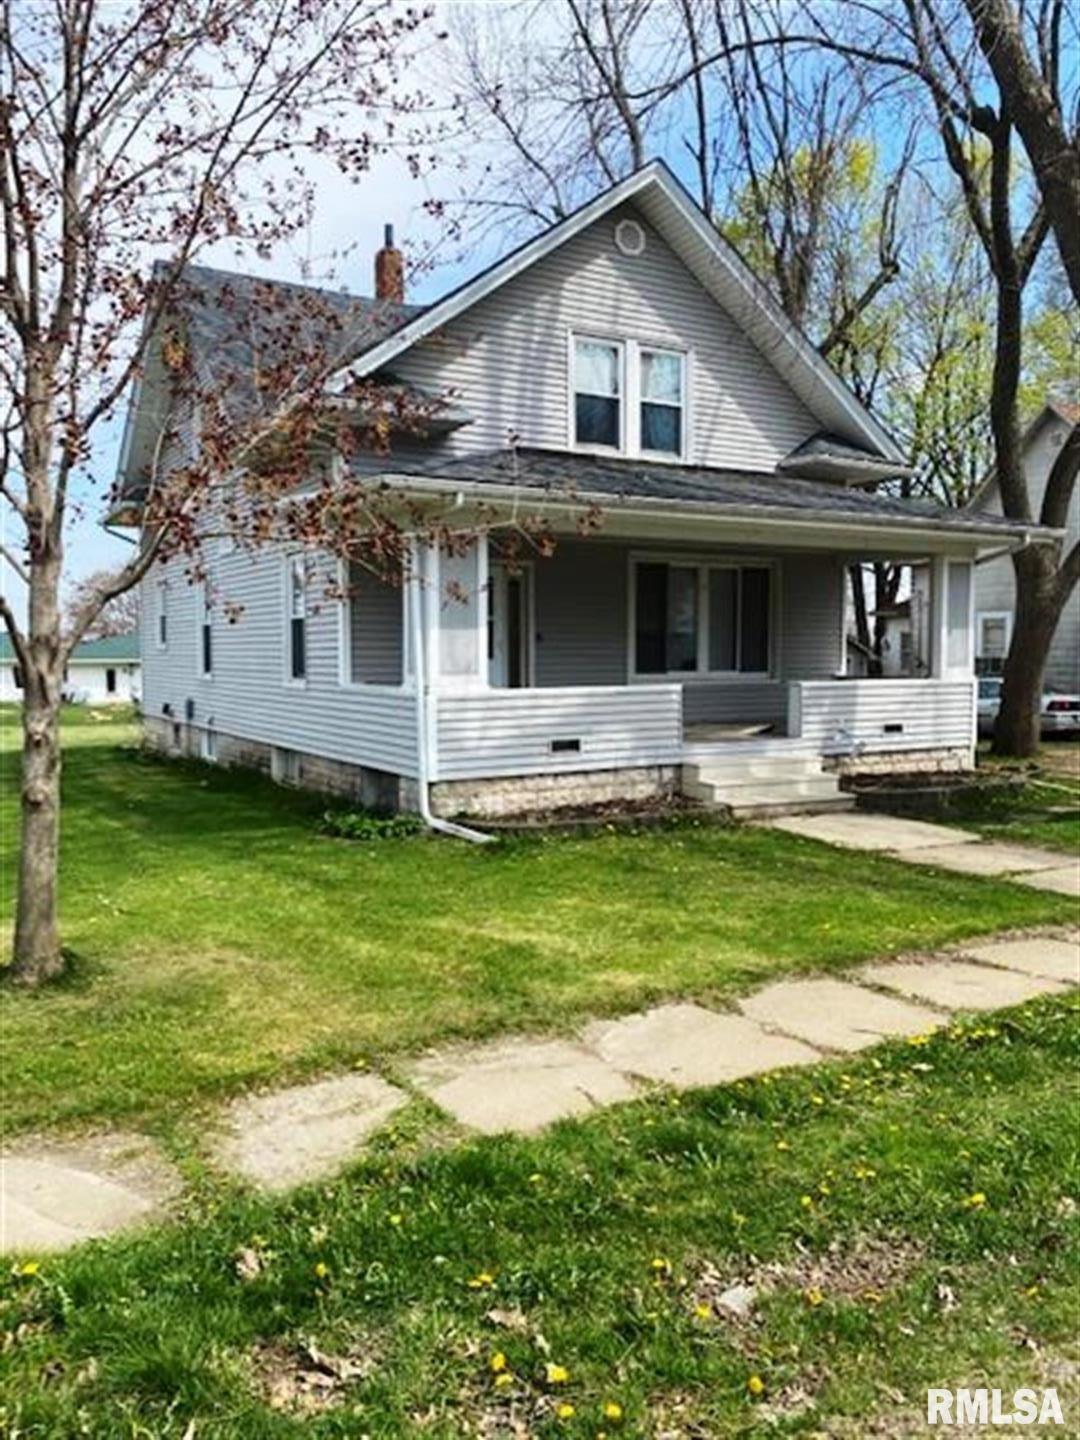 608 HALL Property Photo - Lowden, IA real estate listing